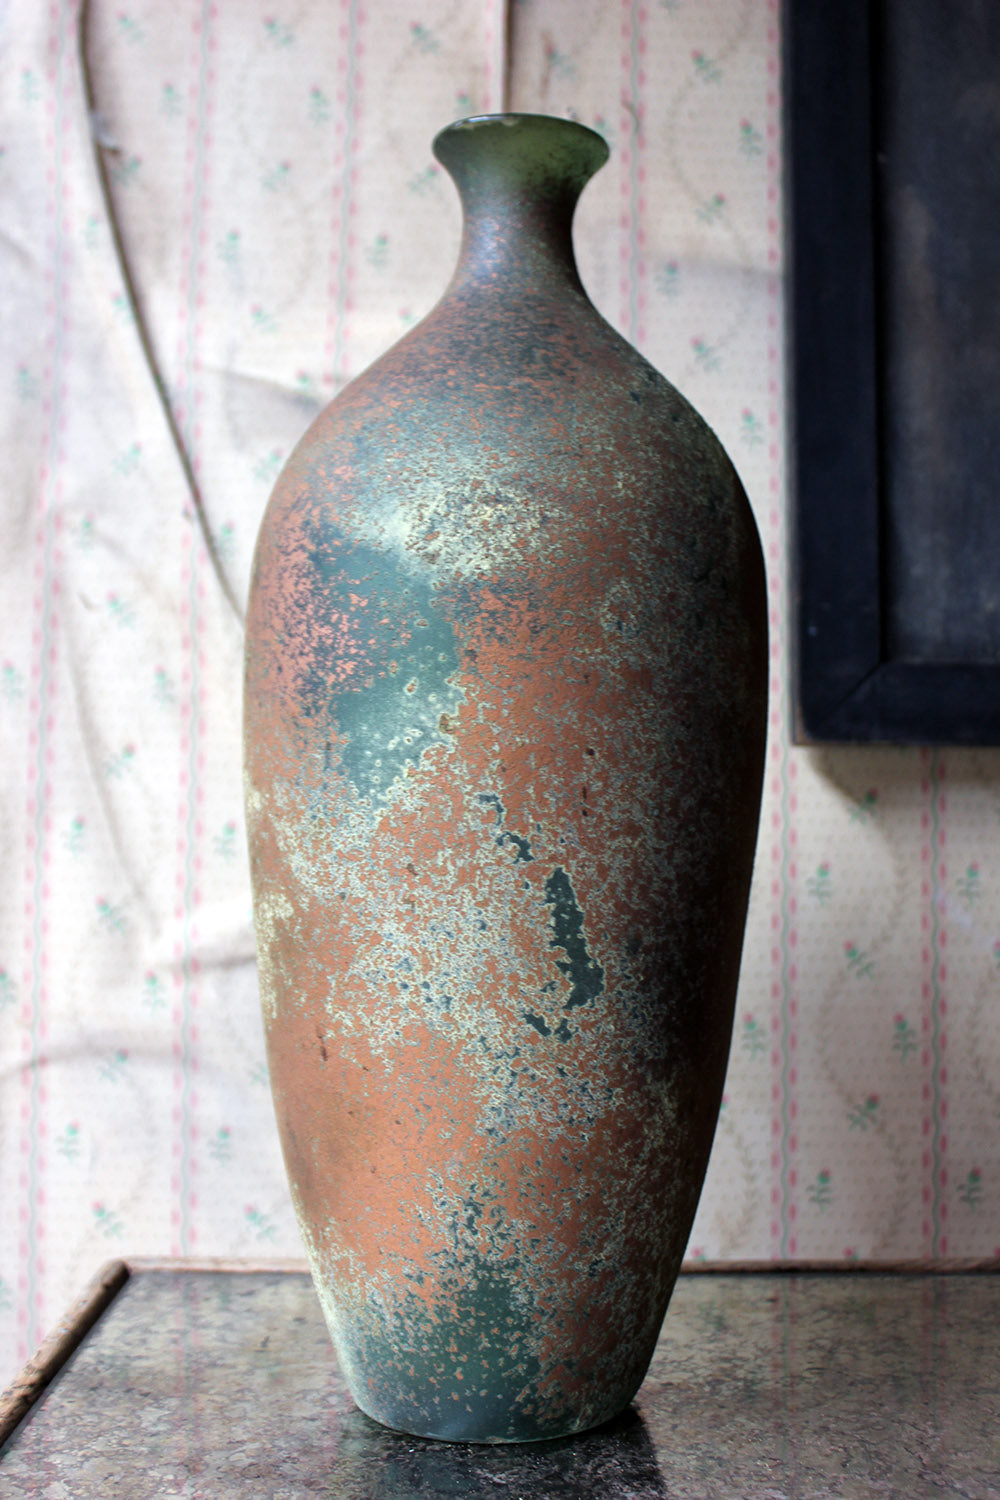 A Vintage Iridescent Green Glass Vase c.1960